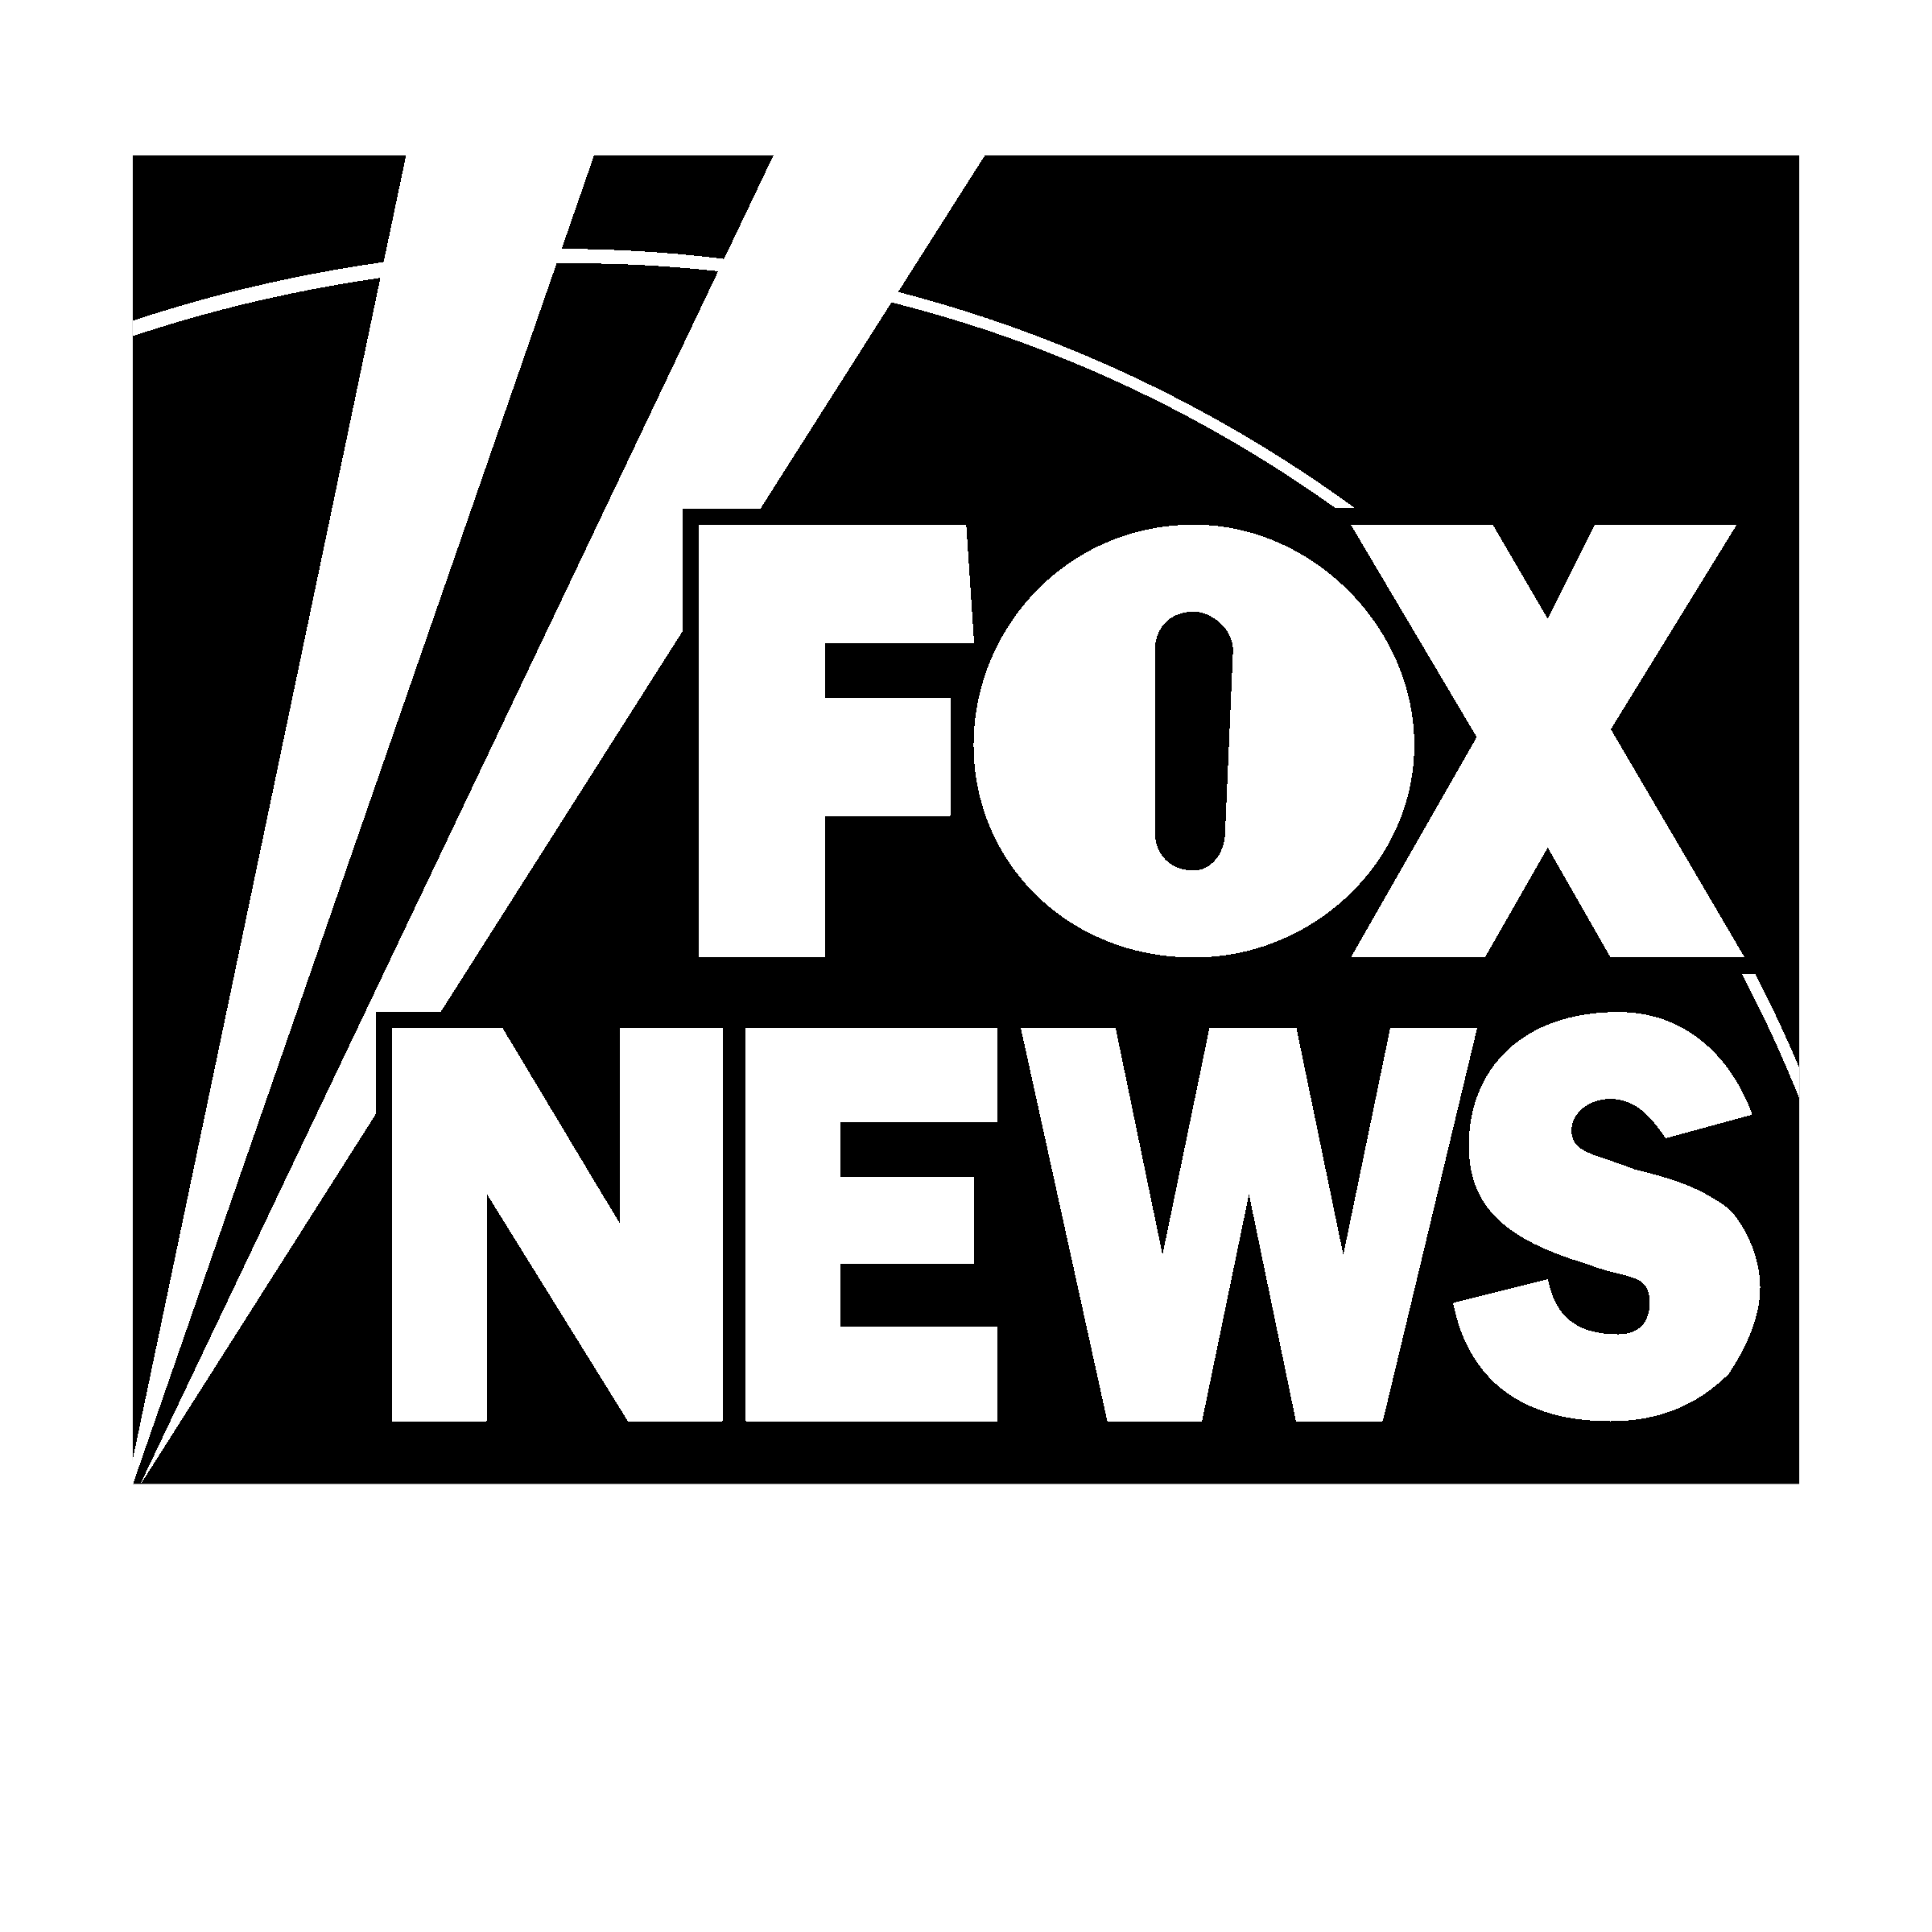 fox-news-logo-black-and-white